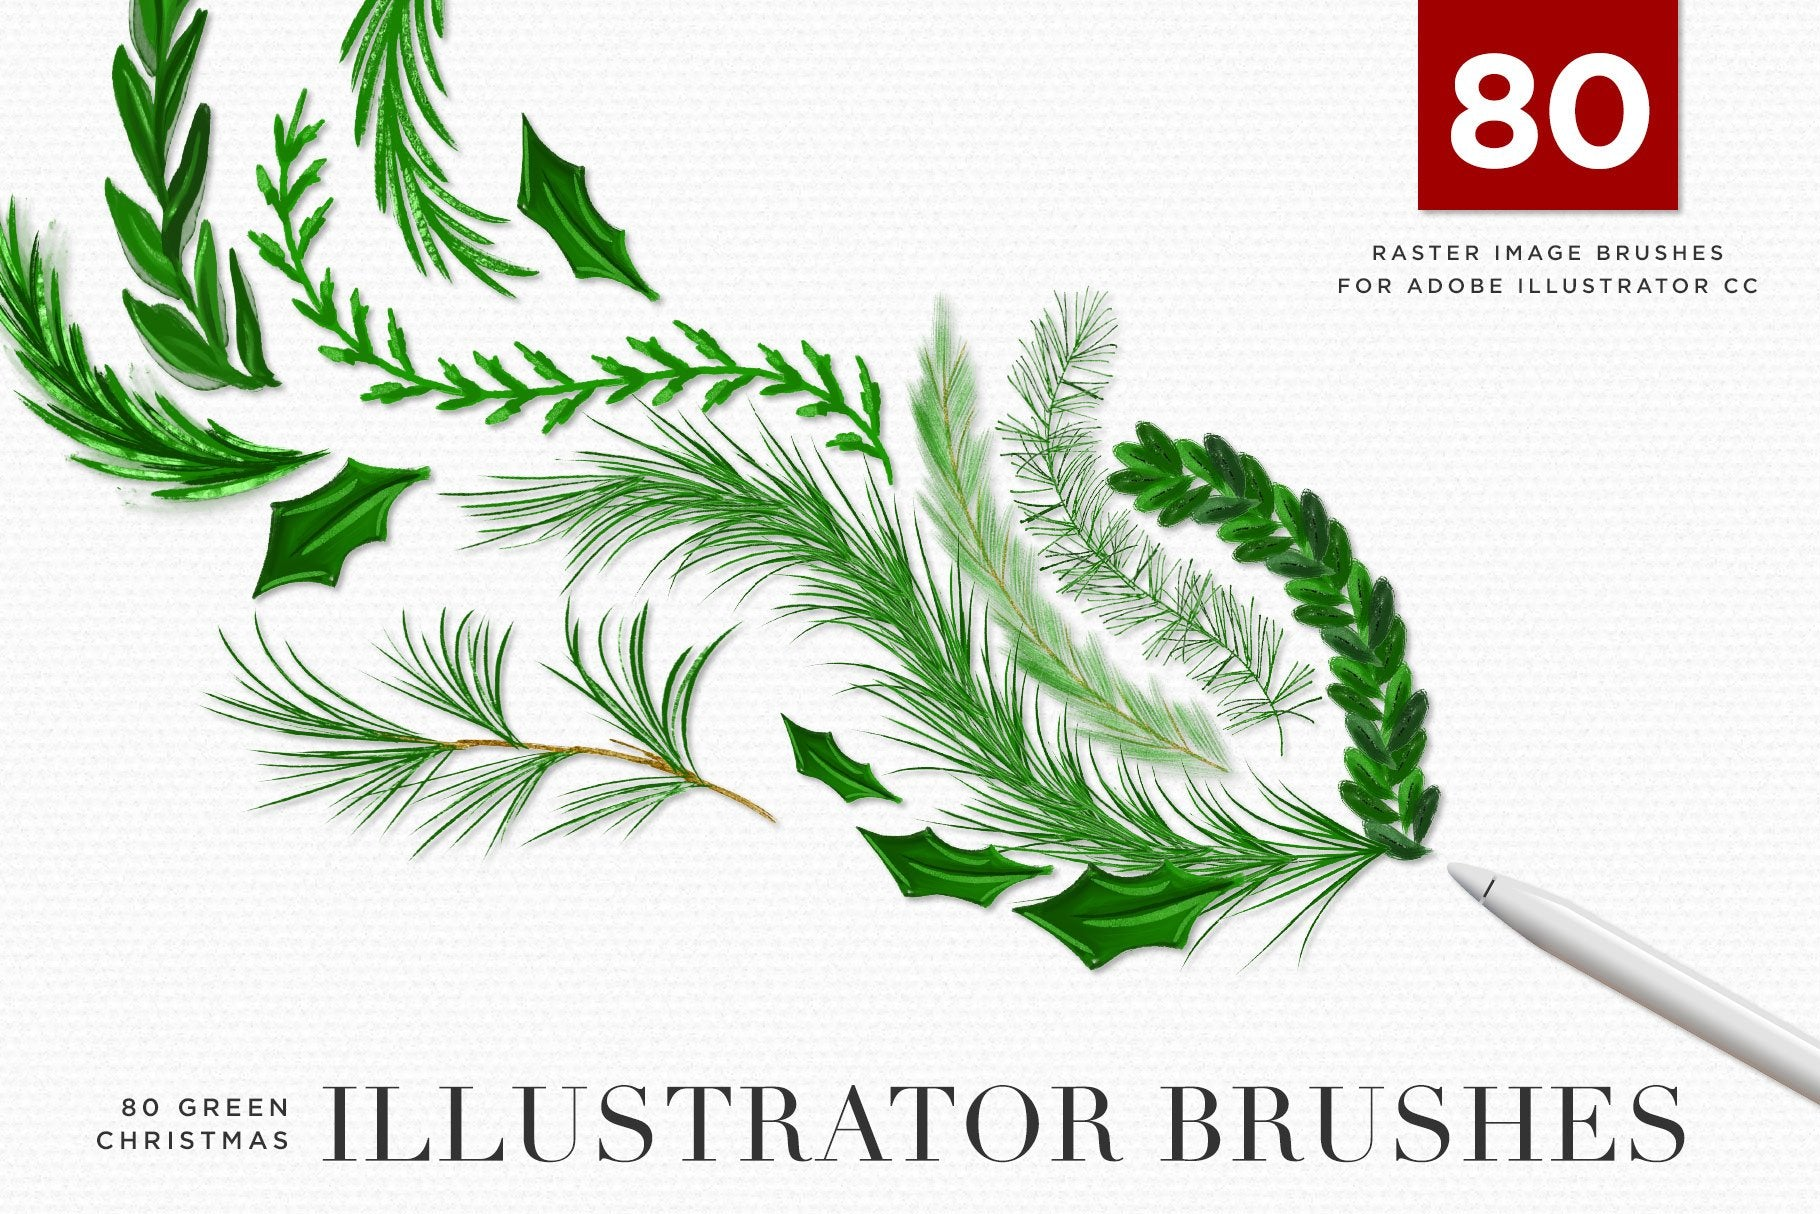 Christmas & Winter Greenery Illustrated Brushes for Adobe Illustrator cover image